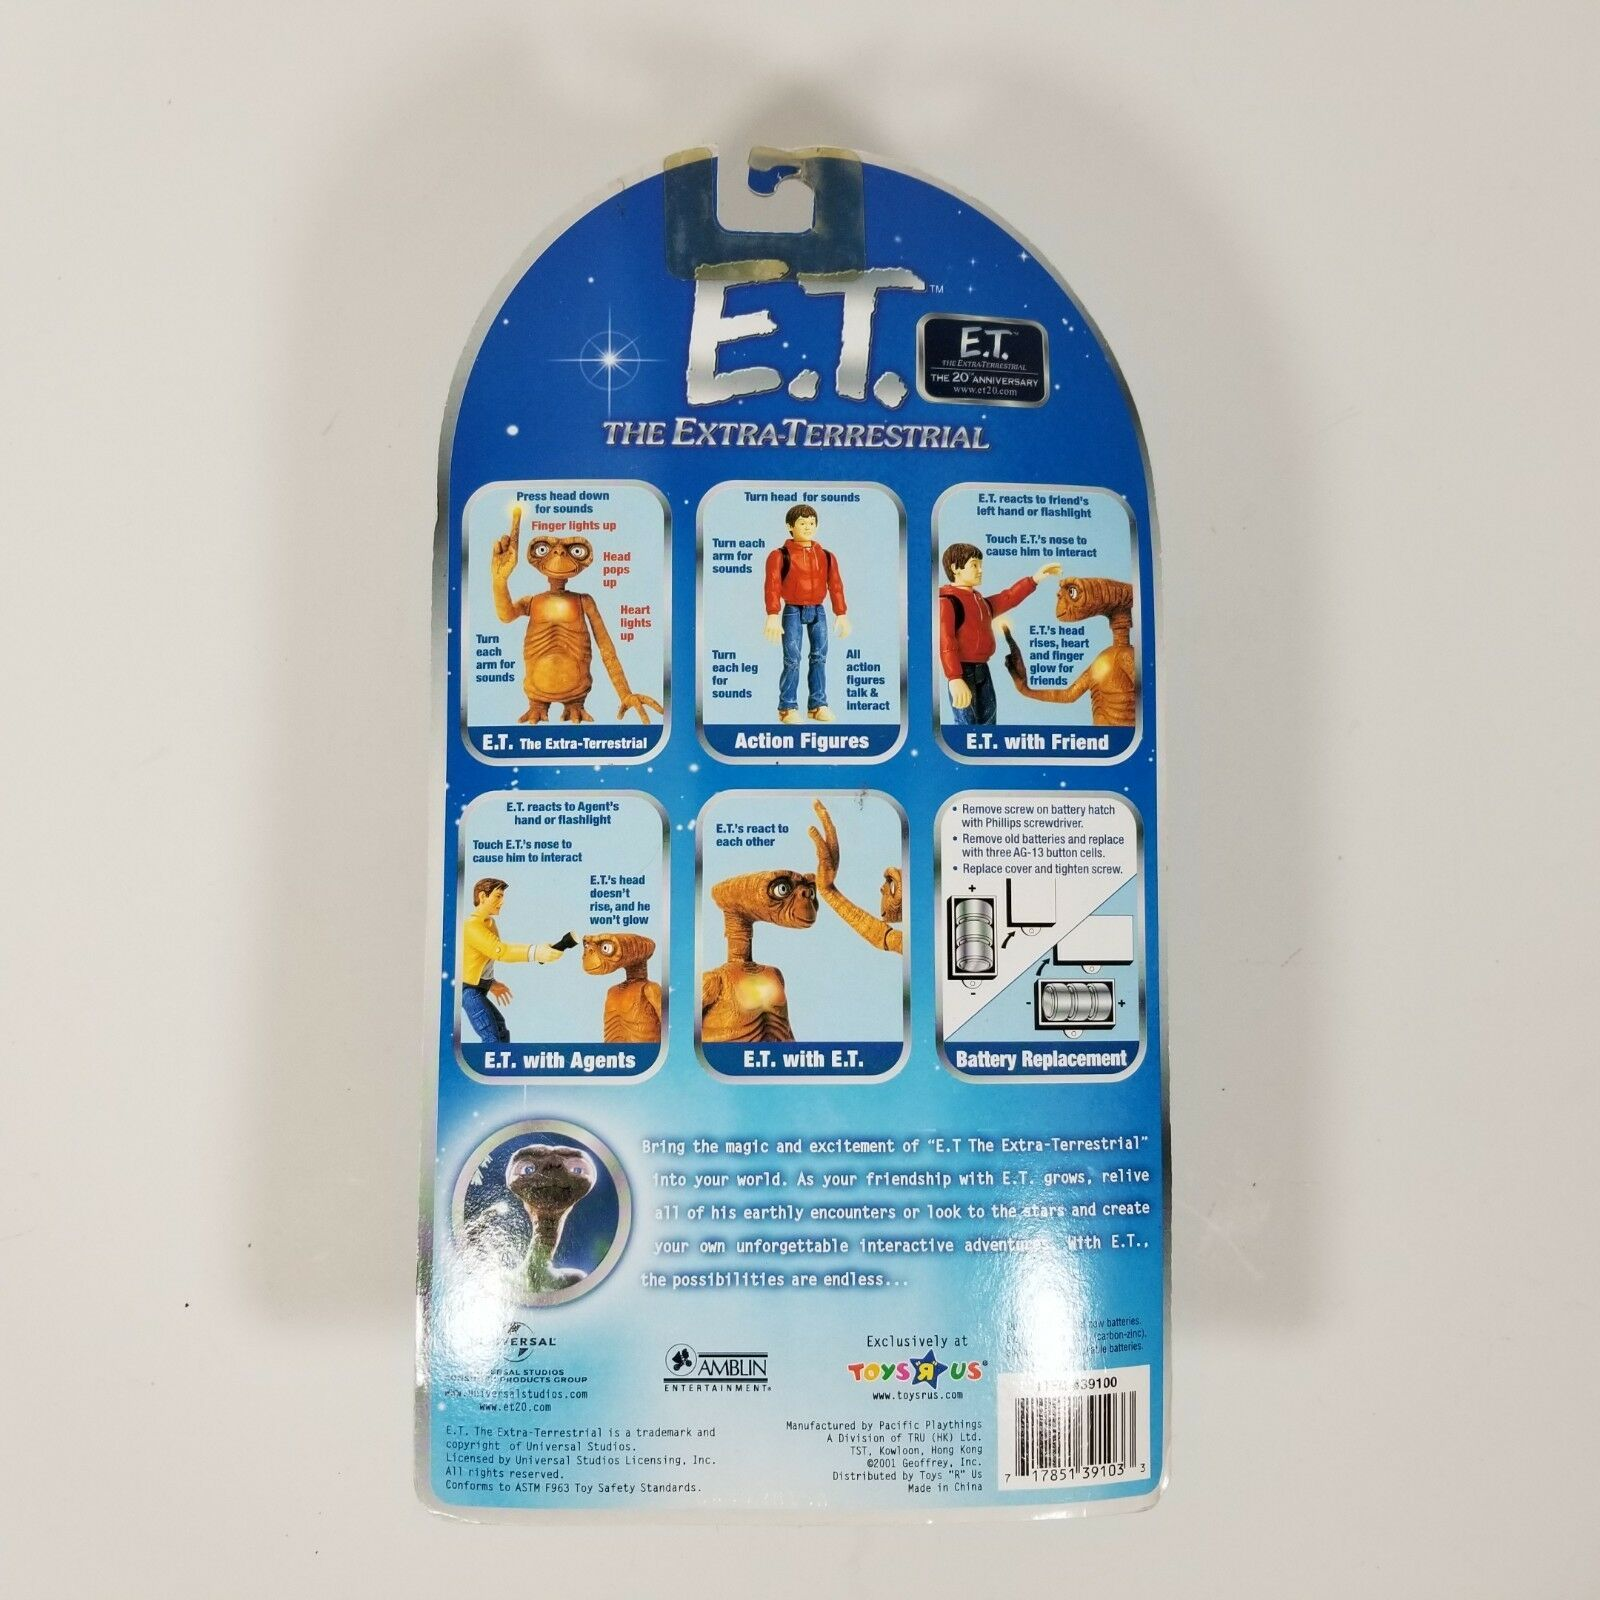 Toys R Us Exclusive E.T. The Extra-Terrestrial Interactive E.T. In Dress and Wig